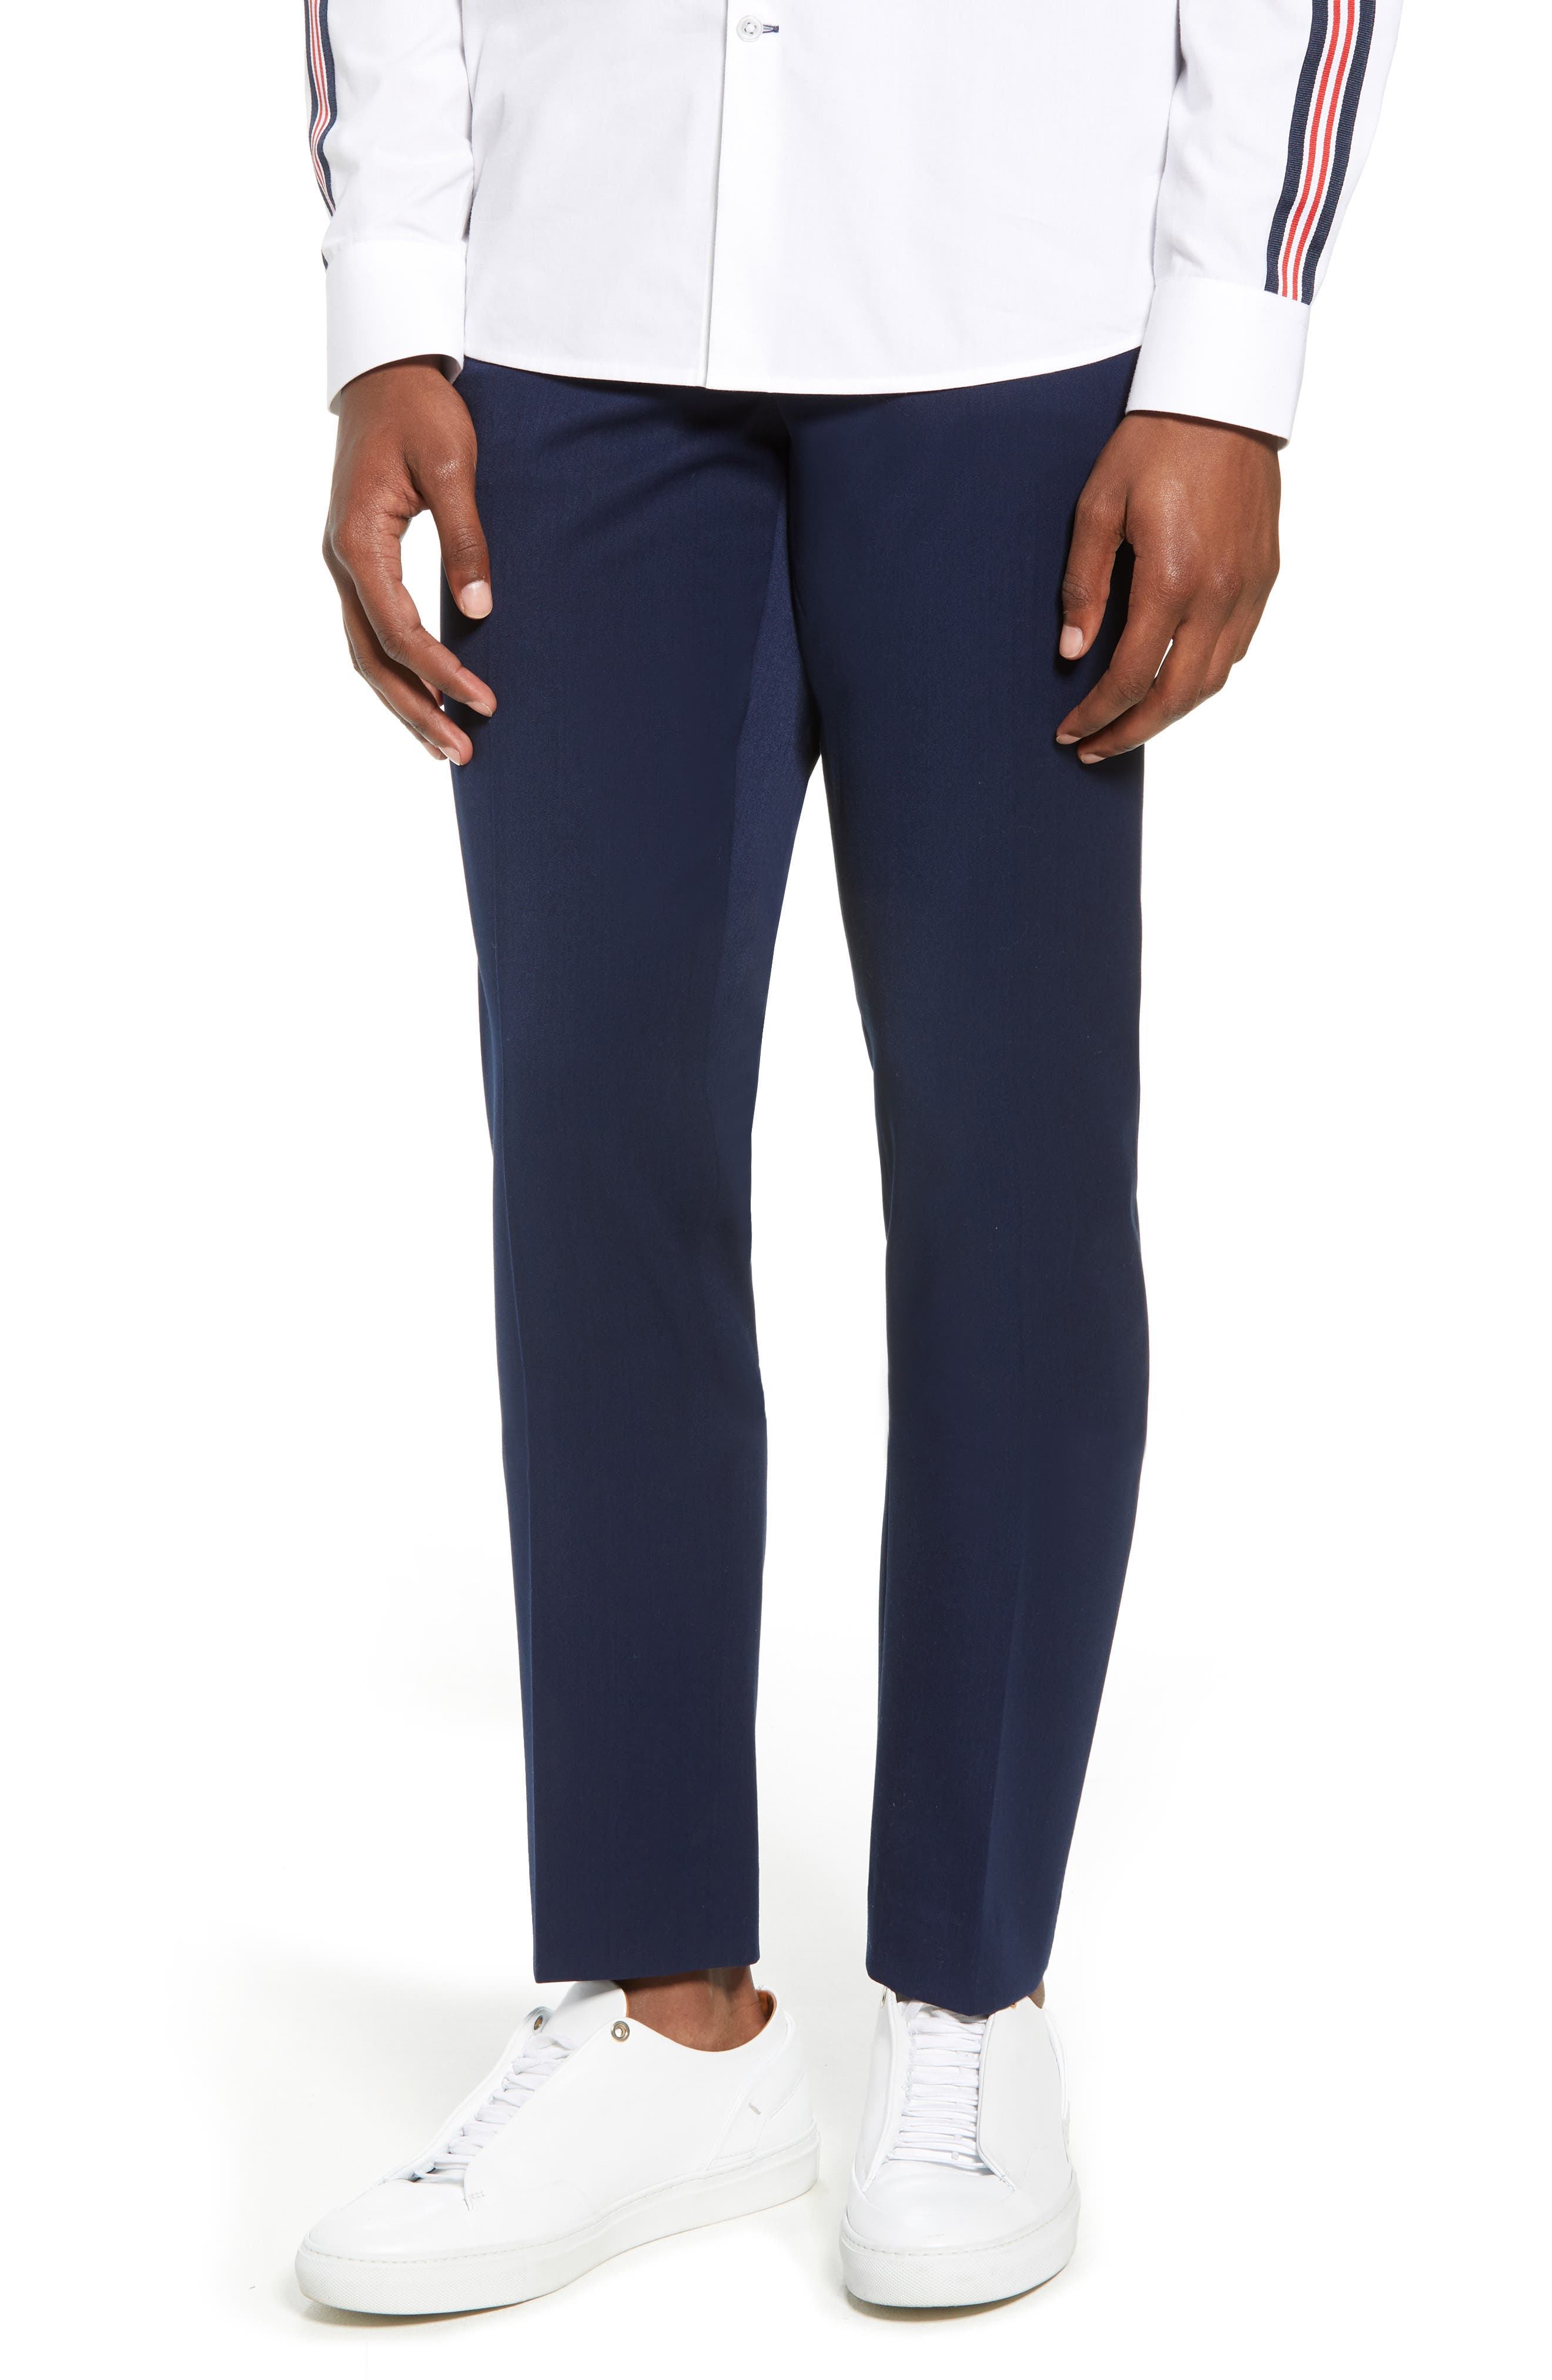 Muscle Fit Trousers,                             Main thumbnail 1, color,                             NAVY BLUE